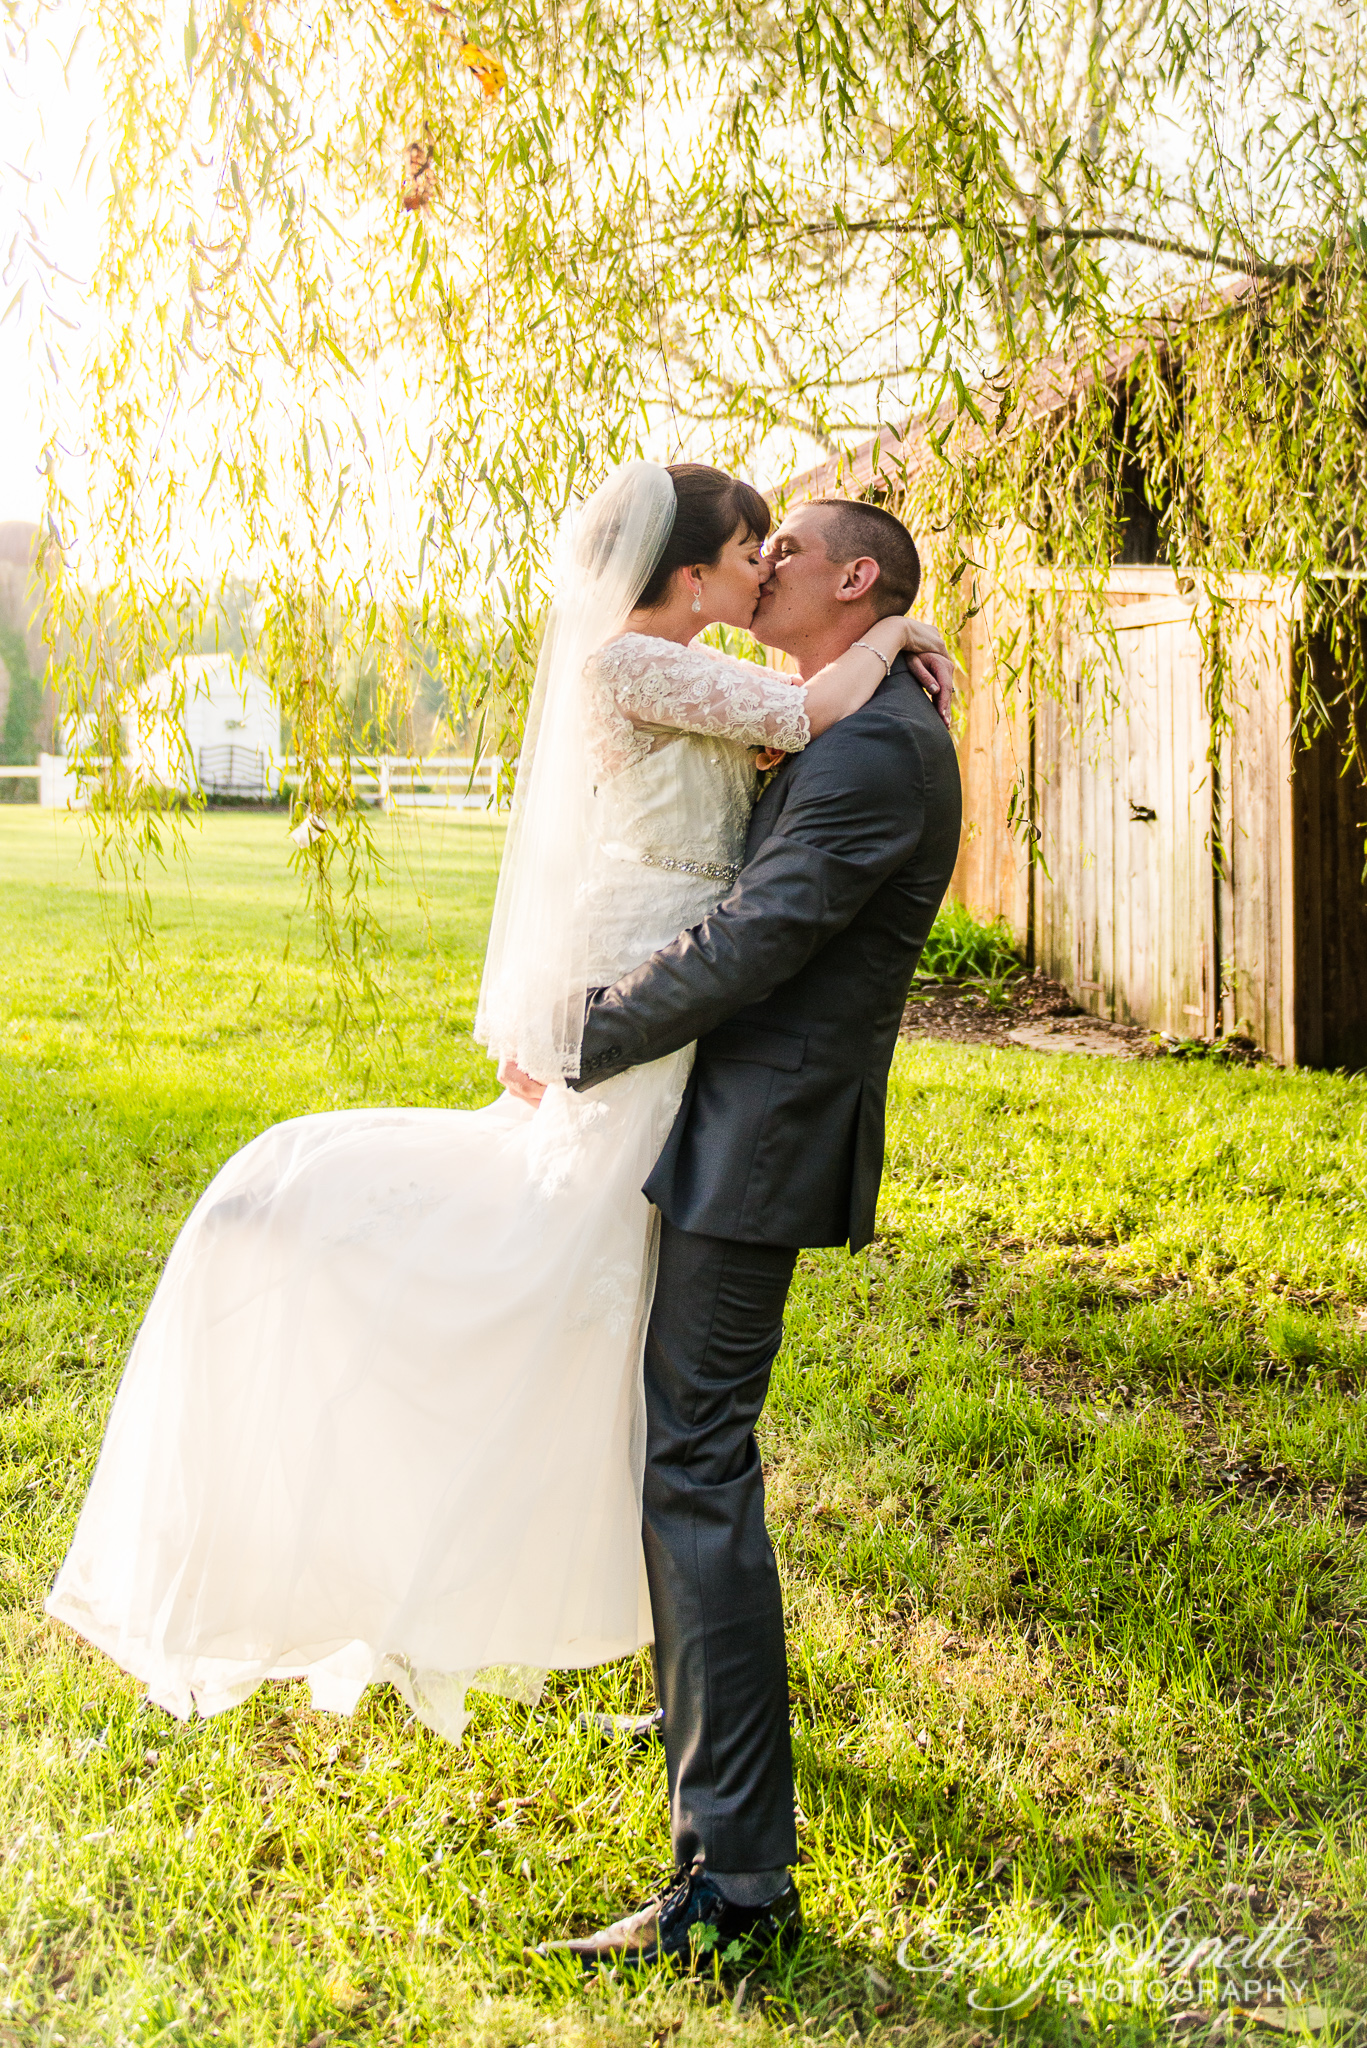 A bride and groom share a kiss under a tree during golden hour after their country wedding at Amber Grove near Richmond, Virginia